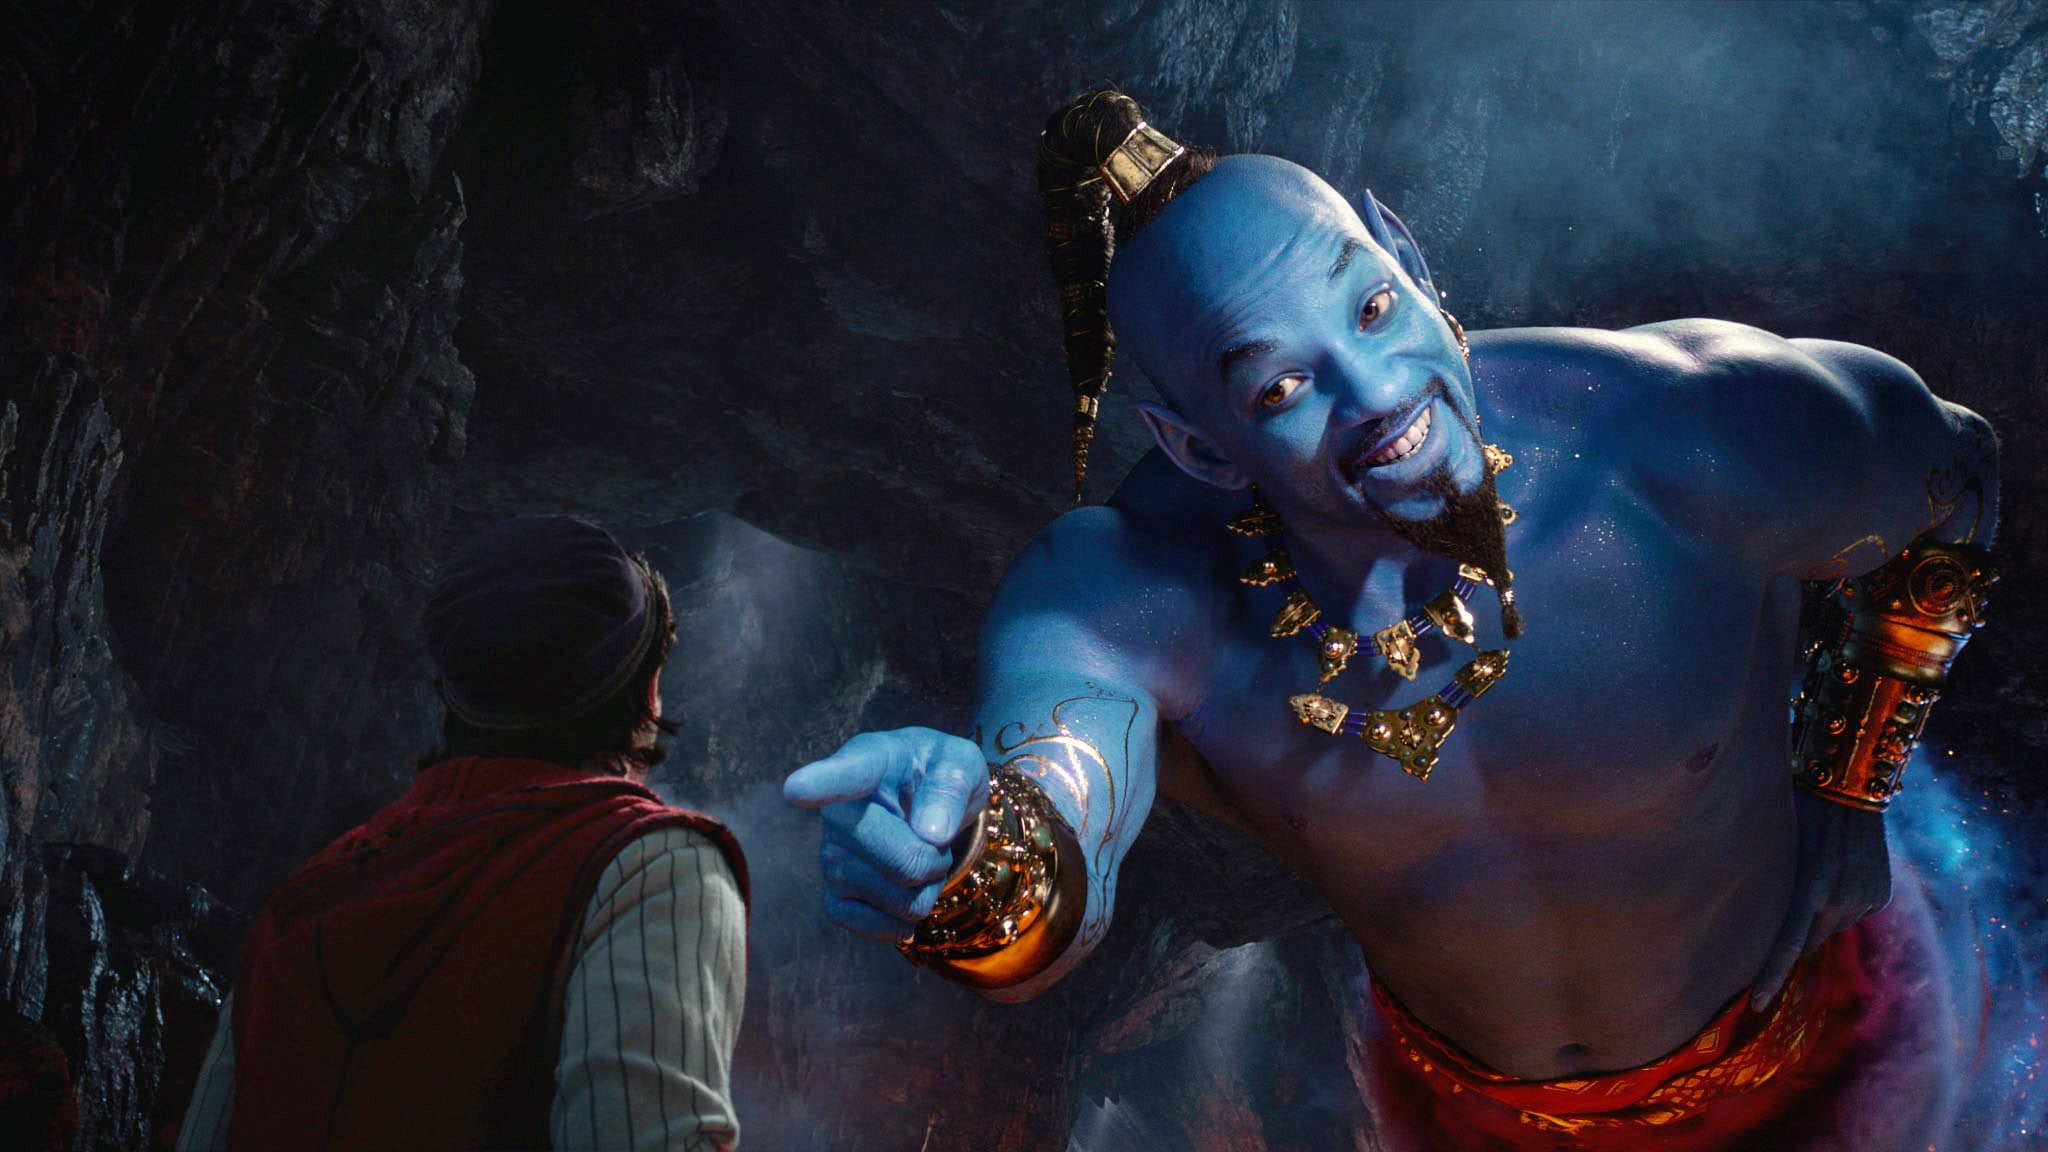 ALADDIN, from left: Mena Massoud as Aladdin, Will Smith as the Genie, 2019.  Walt Disney Studios Motion Pictures / courtesy Everett Collection